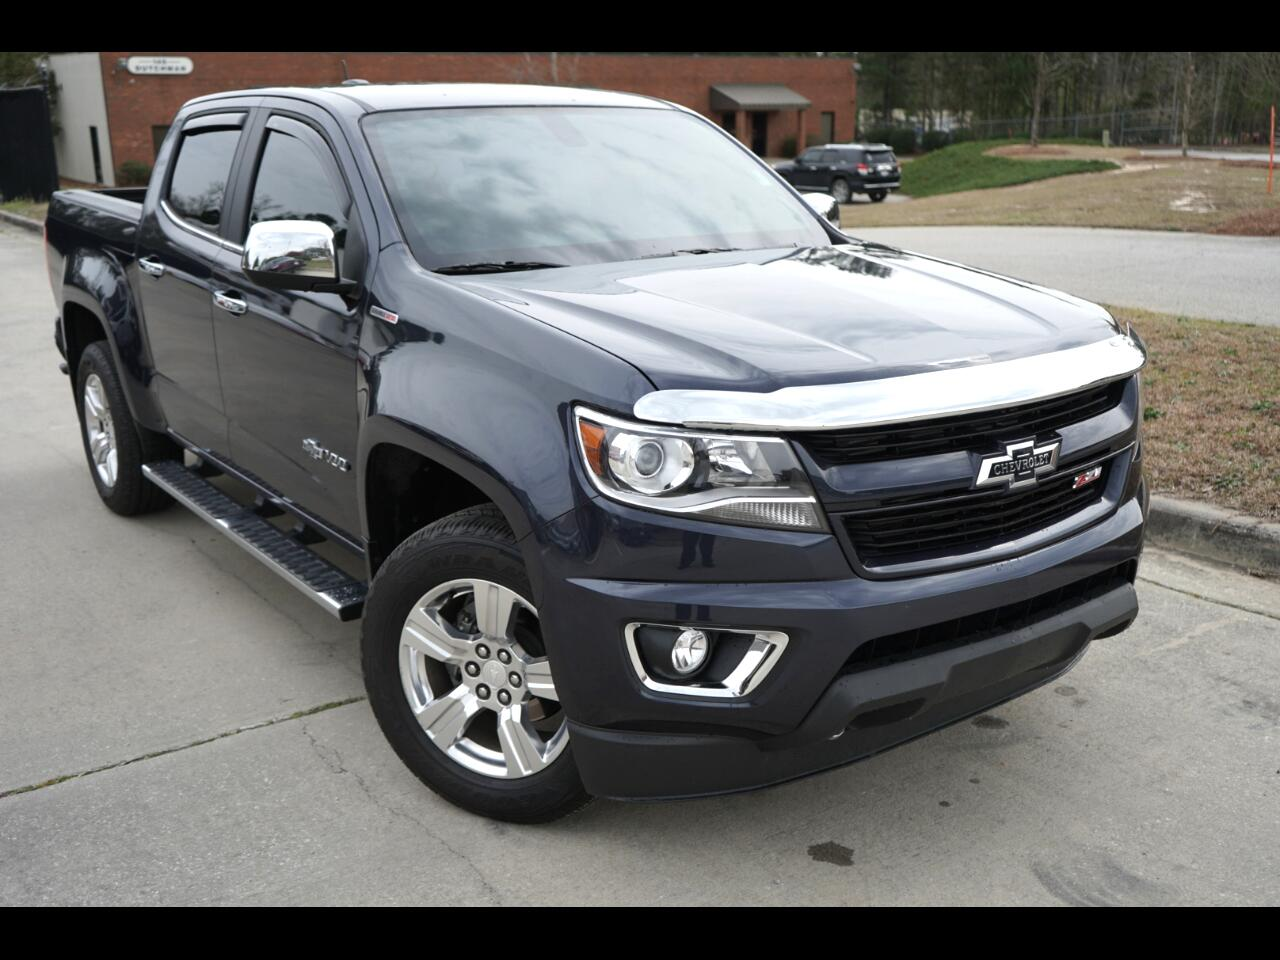 2018 Chevrolet Colorado 4wd Duramax Diesel Z71 Loaded Rare Find